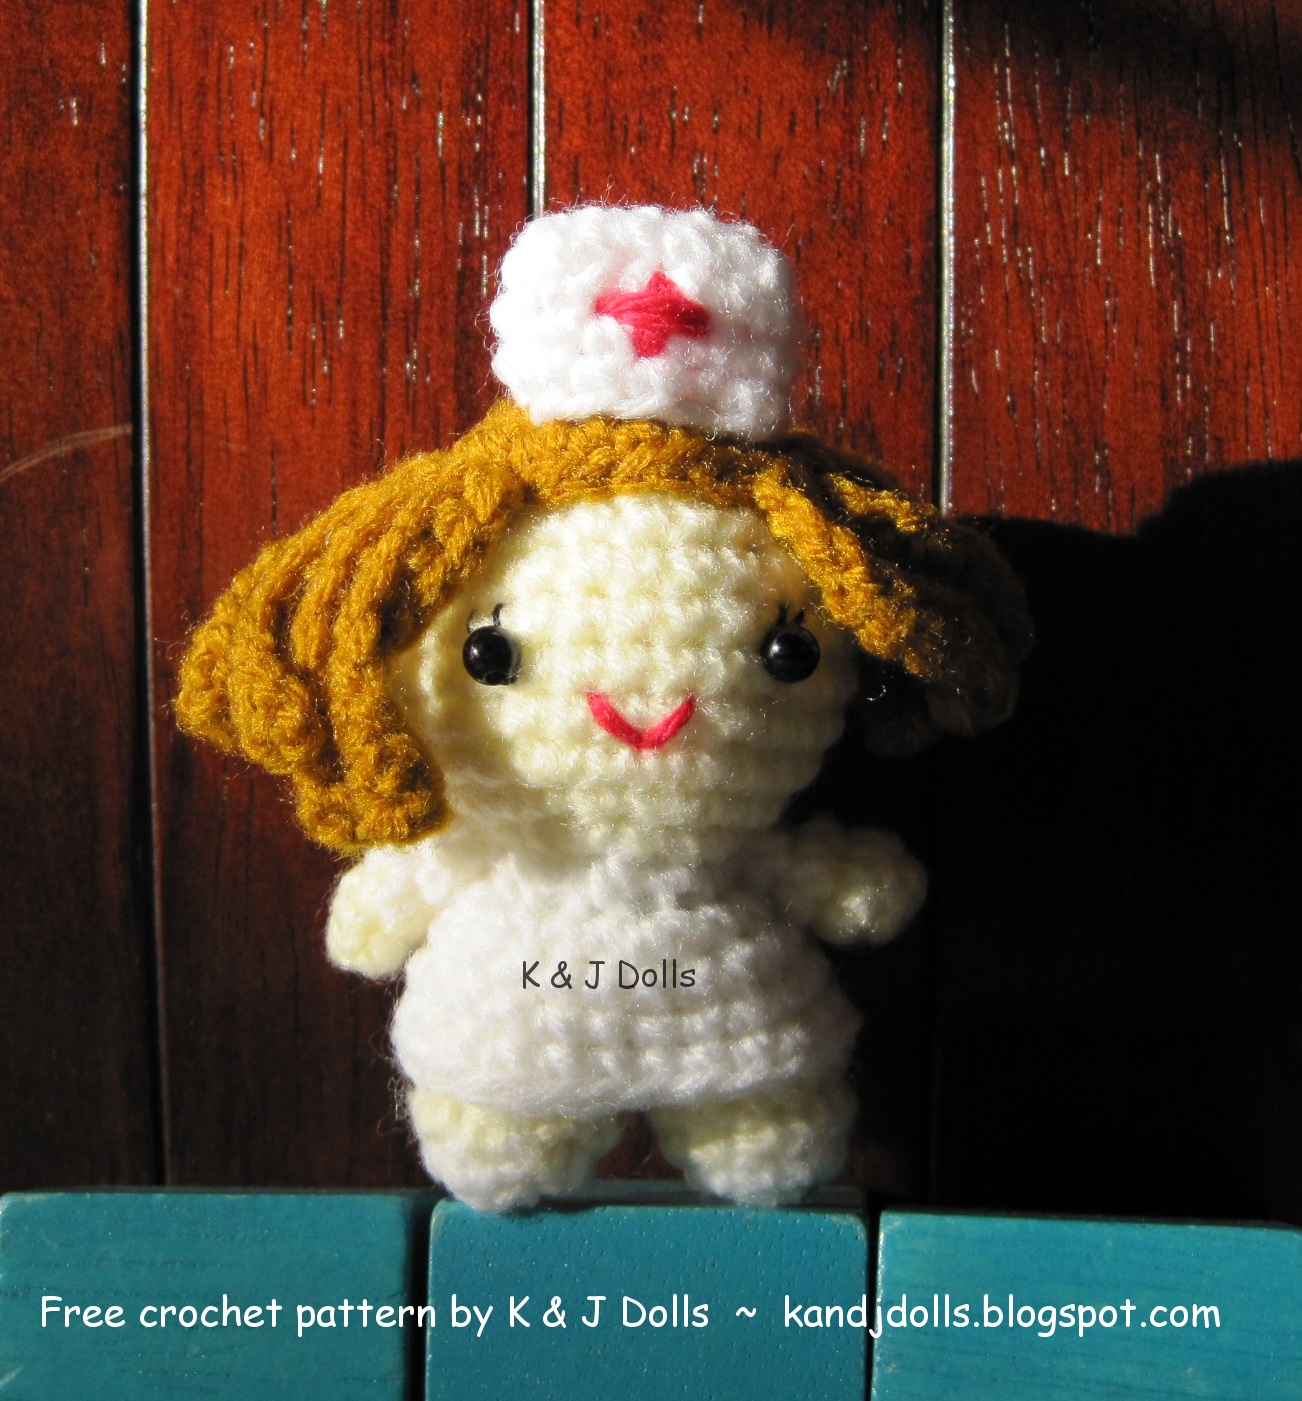 Amigurumi nurse doll pattern by yaseminkale2 on Etsy | Infermiera ... | 1401x1302